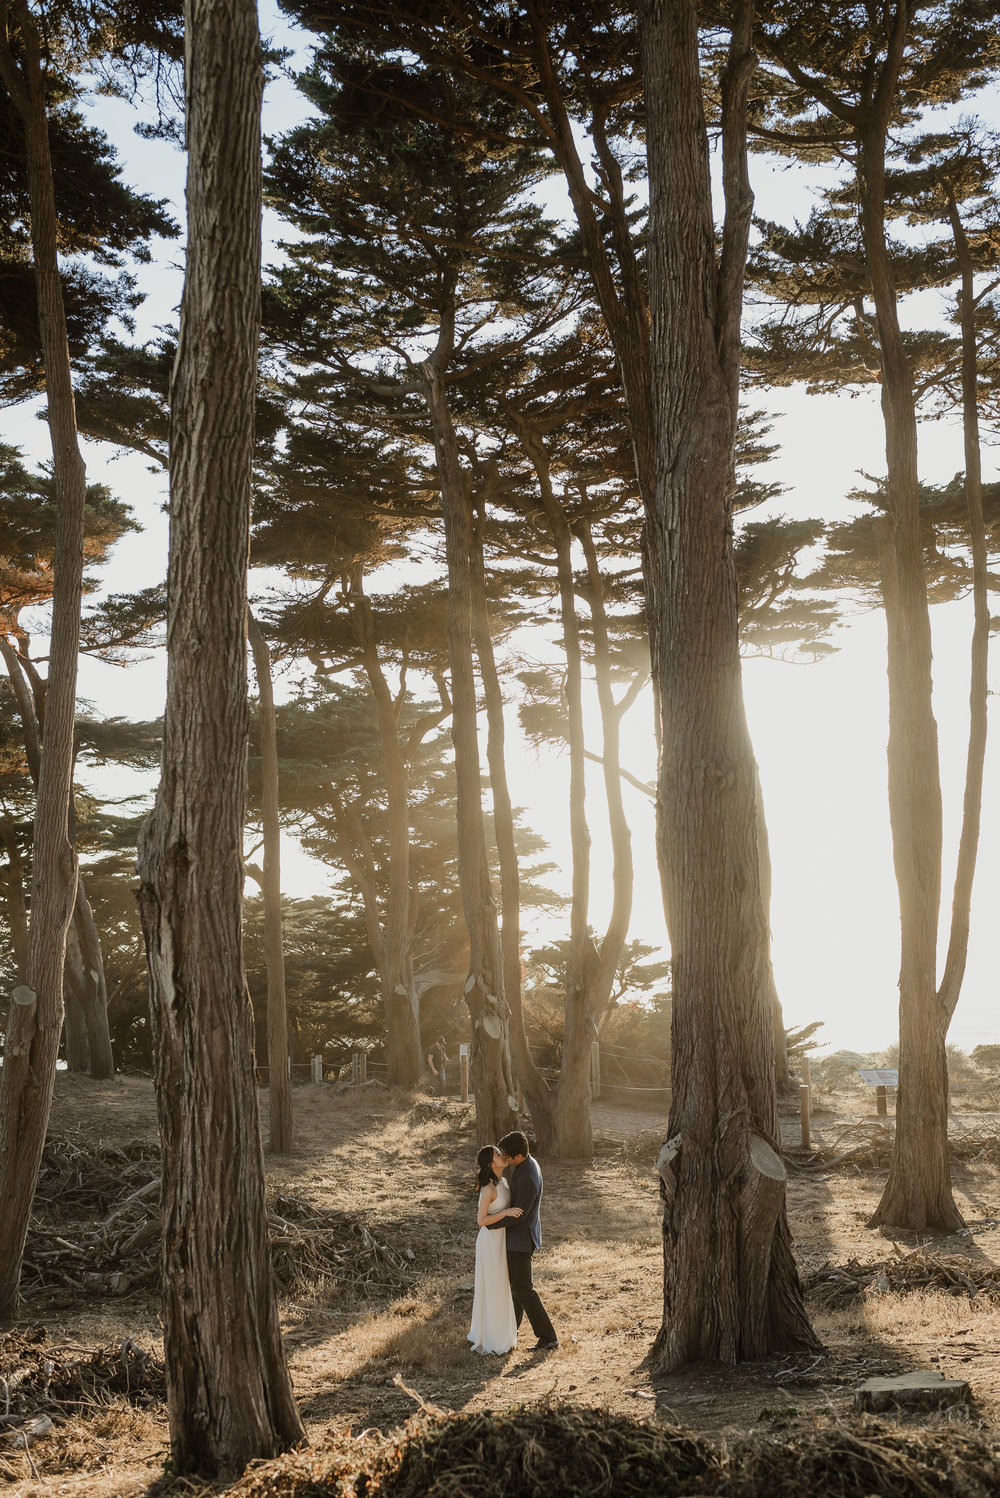 autumn-san-francisco-sutro-baths-engagement-session-vivianchen-064.jpg